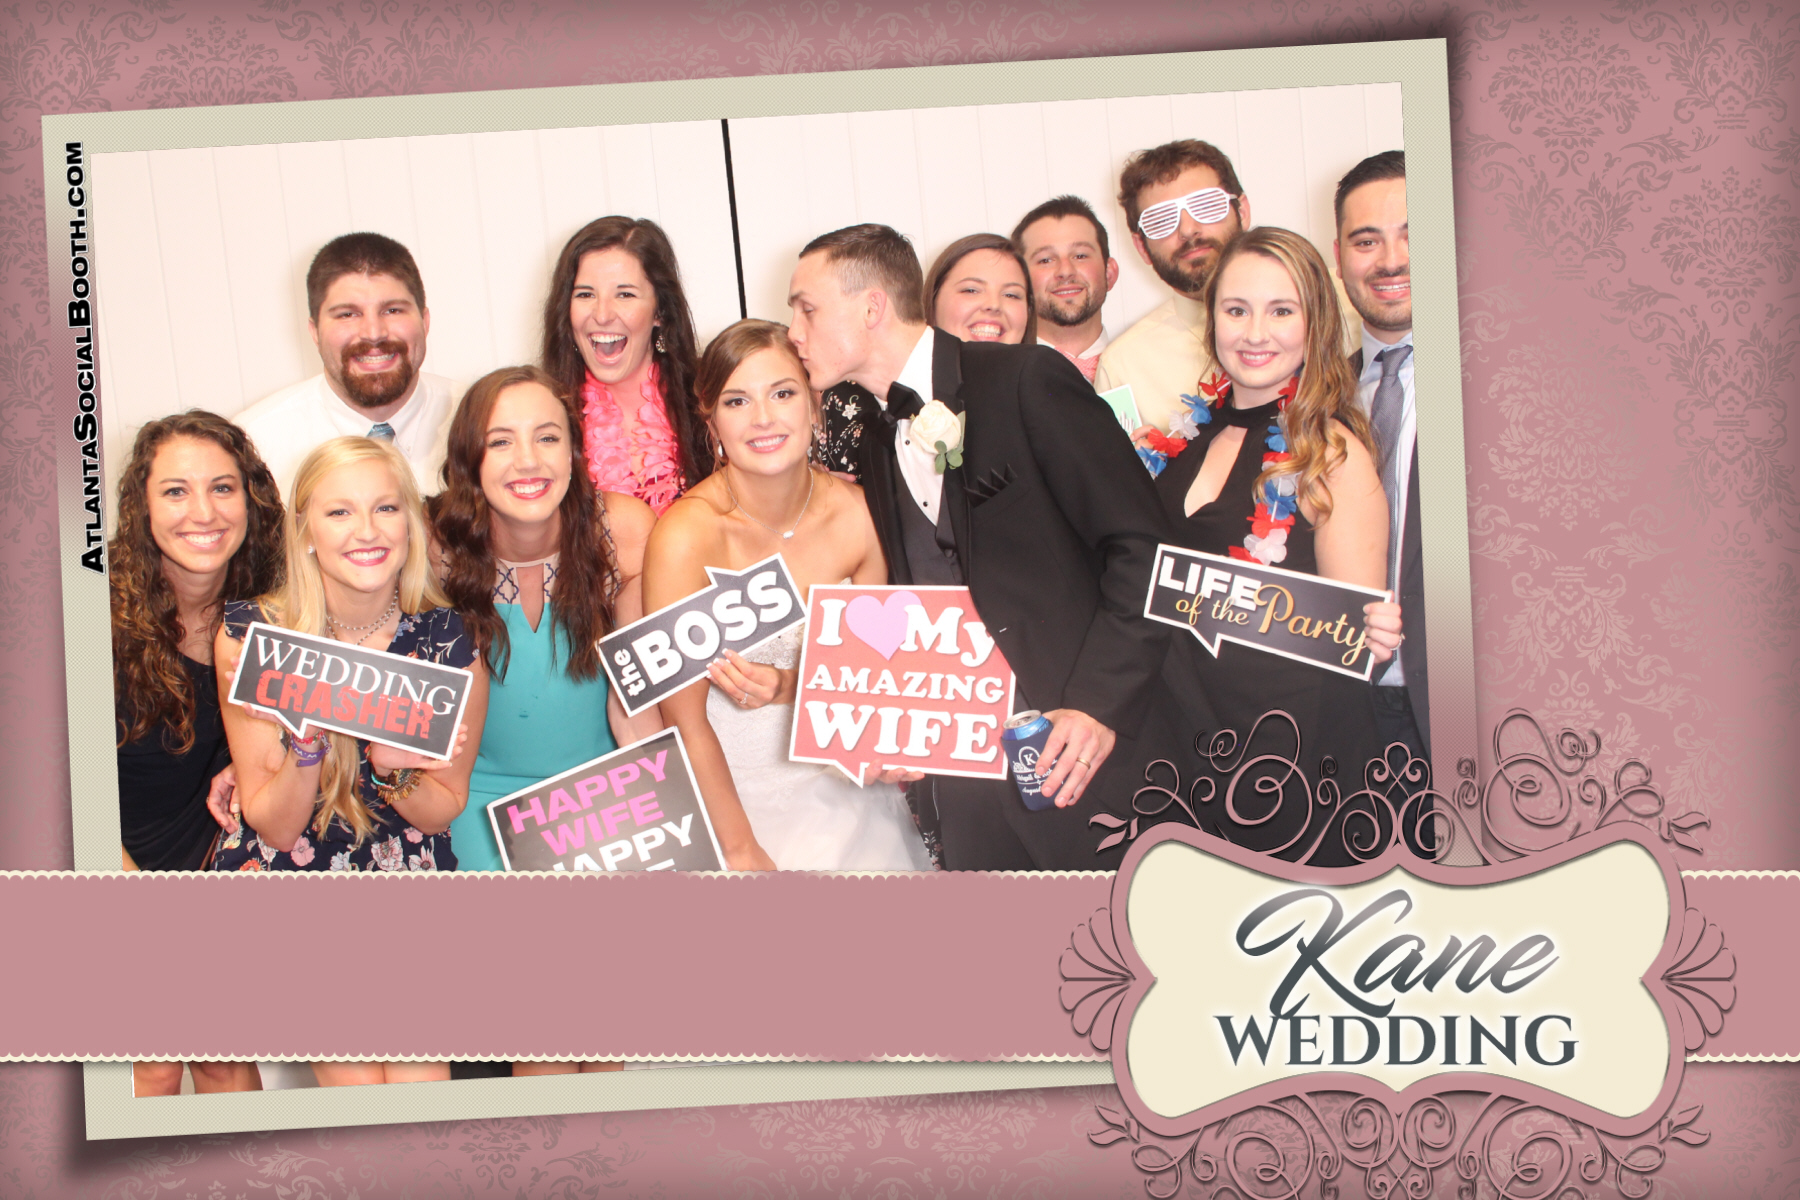 Kane Wedding